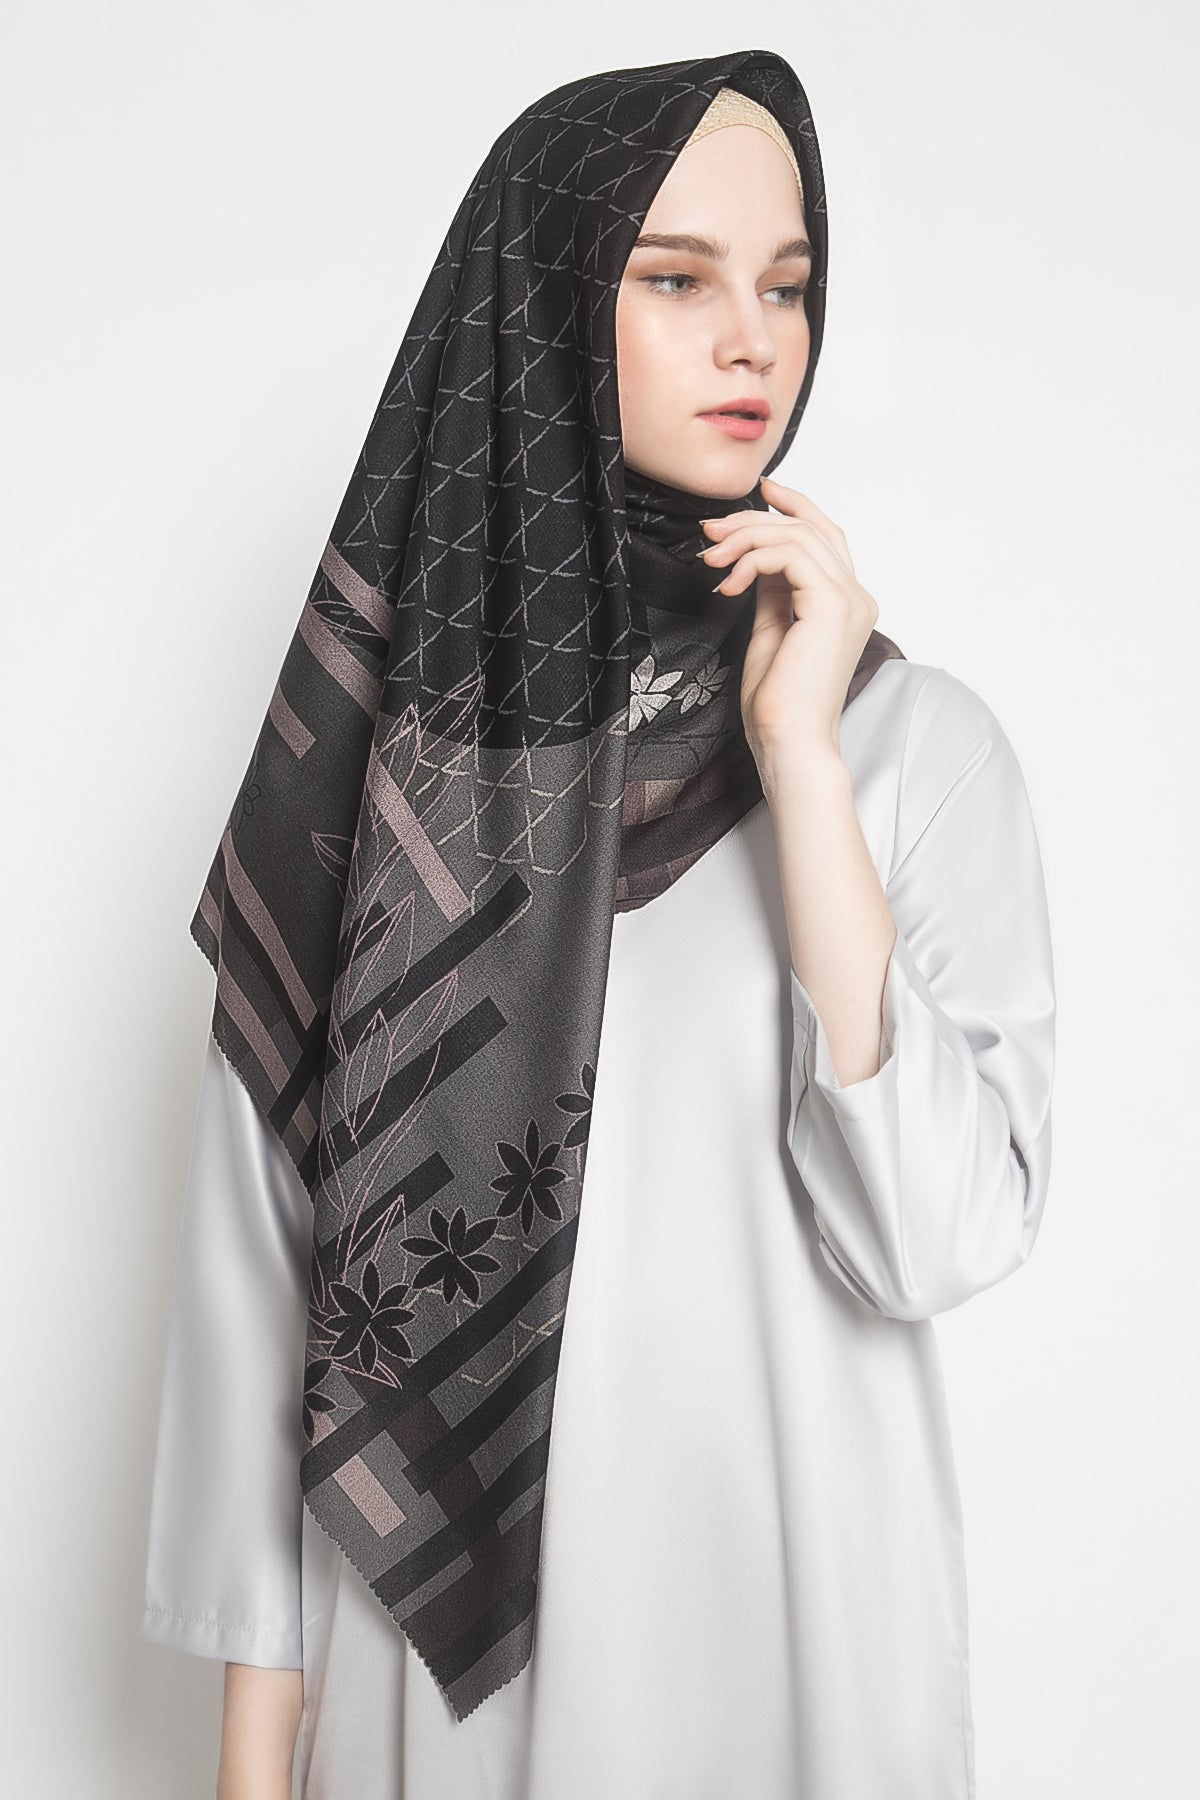 La Tierra Onyx Scarf in Black